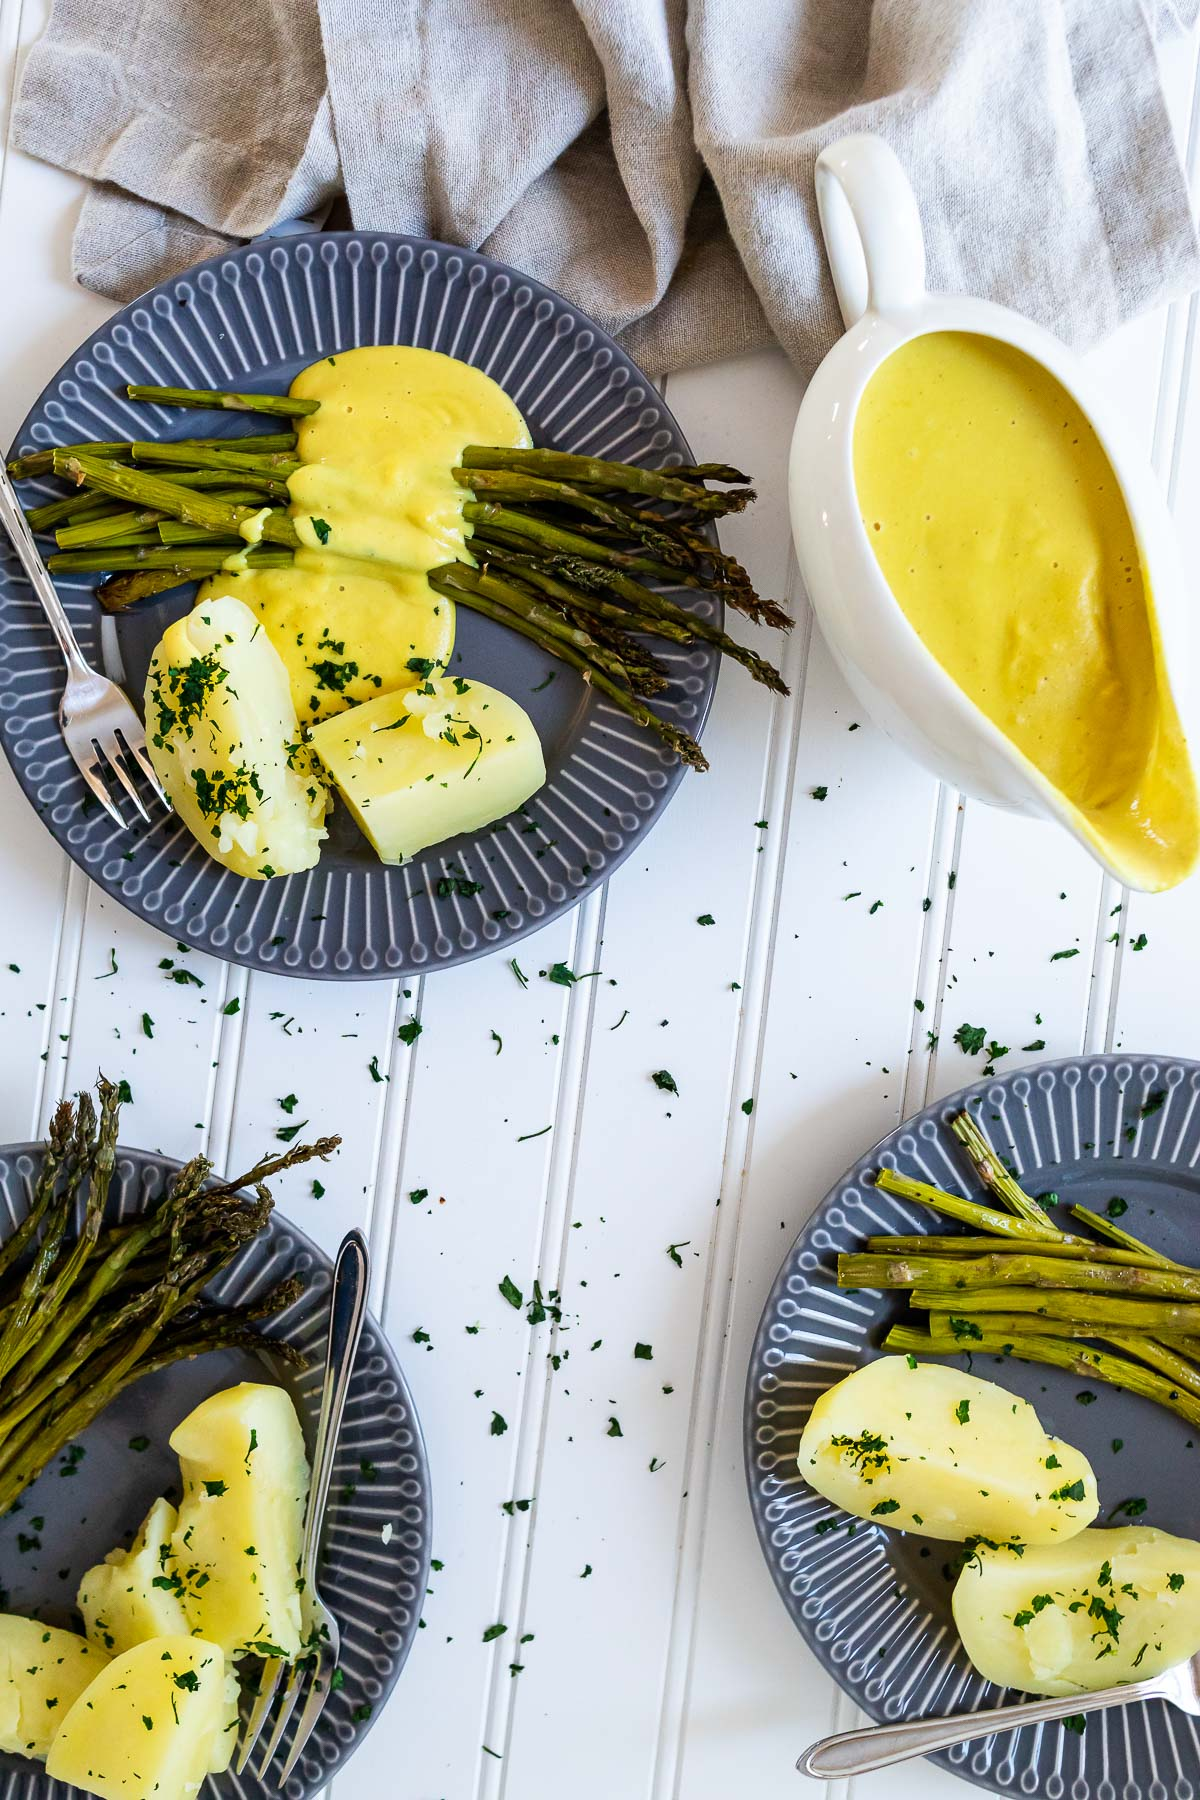 3 plates with asparagus, potatoes and vegan hollandaise sauce and one saucier with hollandaise